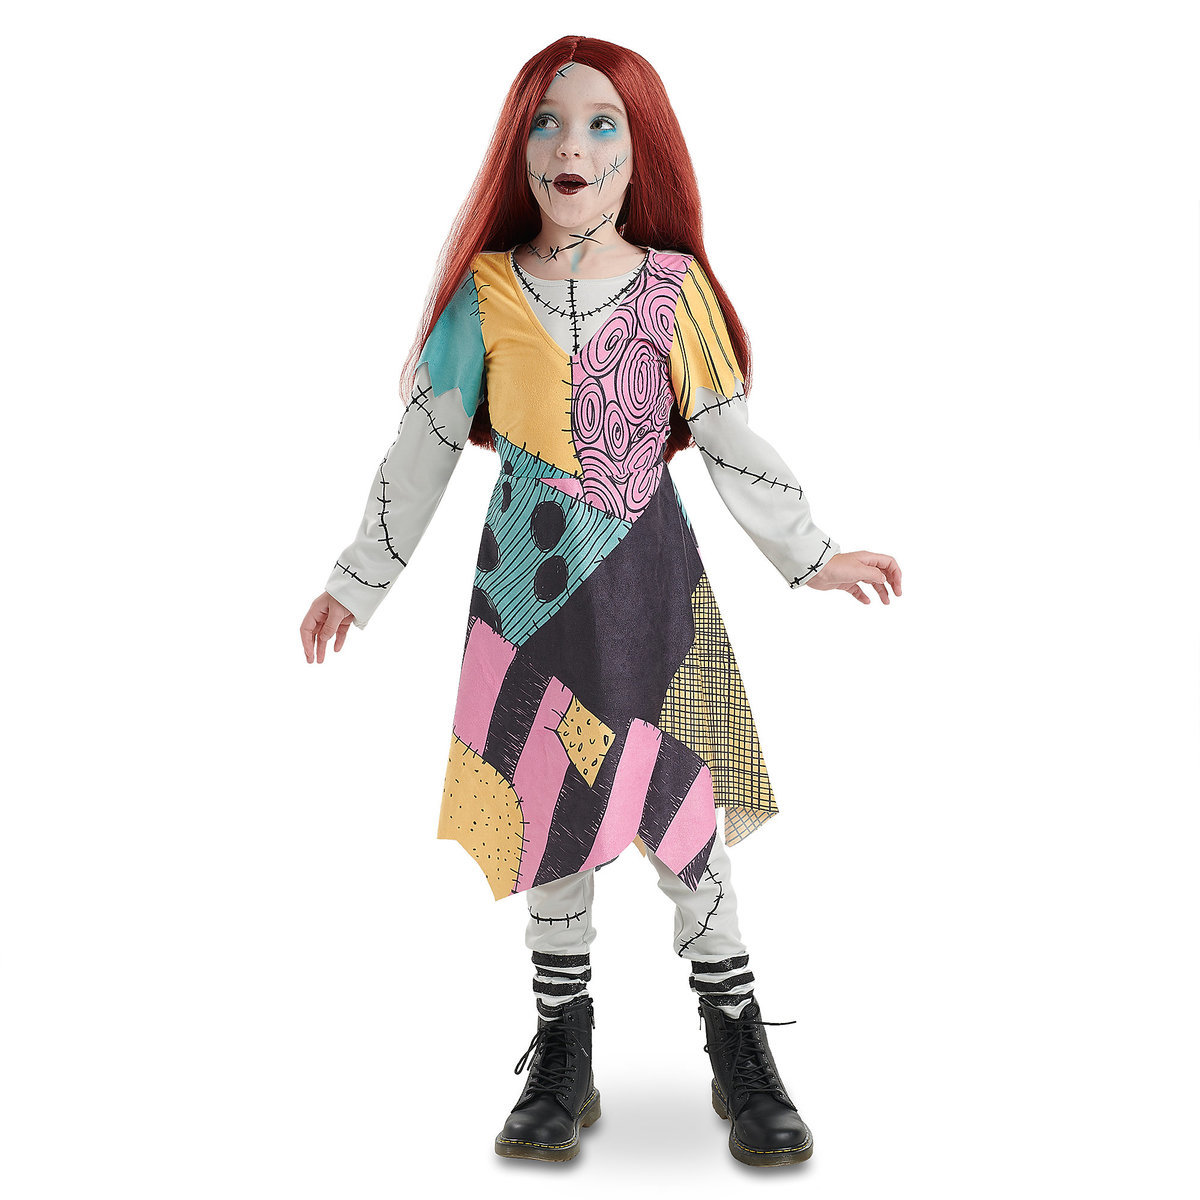 Sally Costume for Kids - The Nightmare Before Christmas | shopDisney